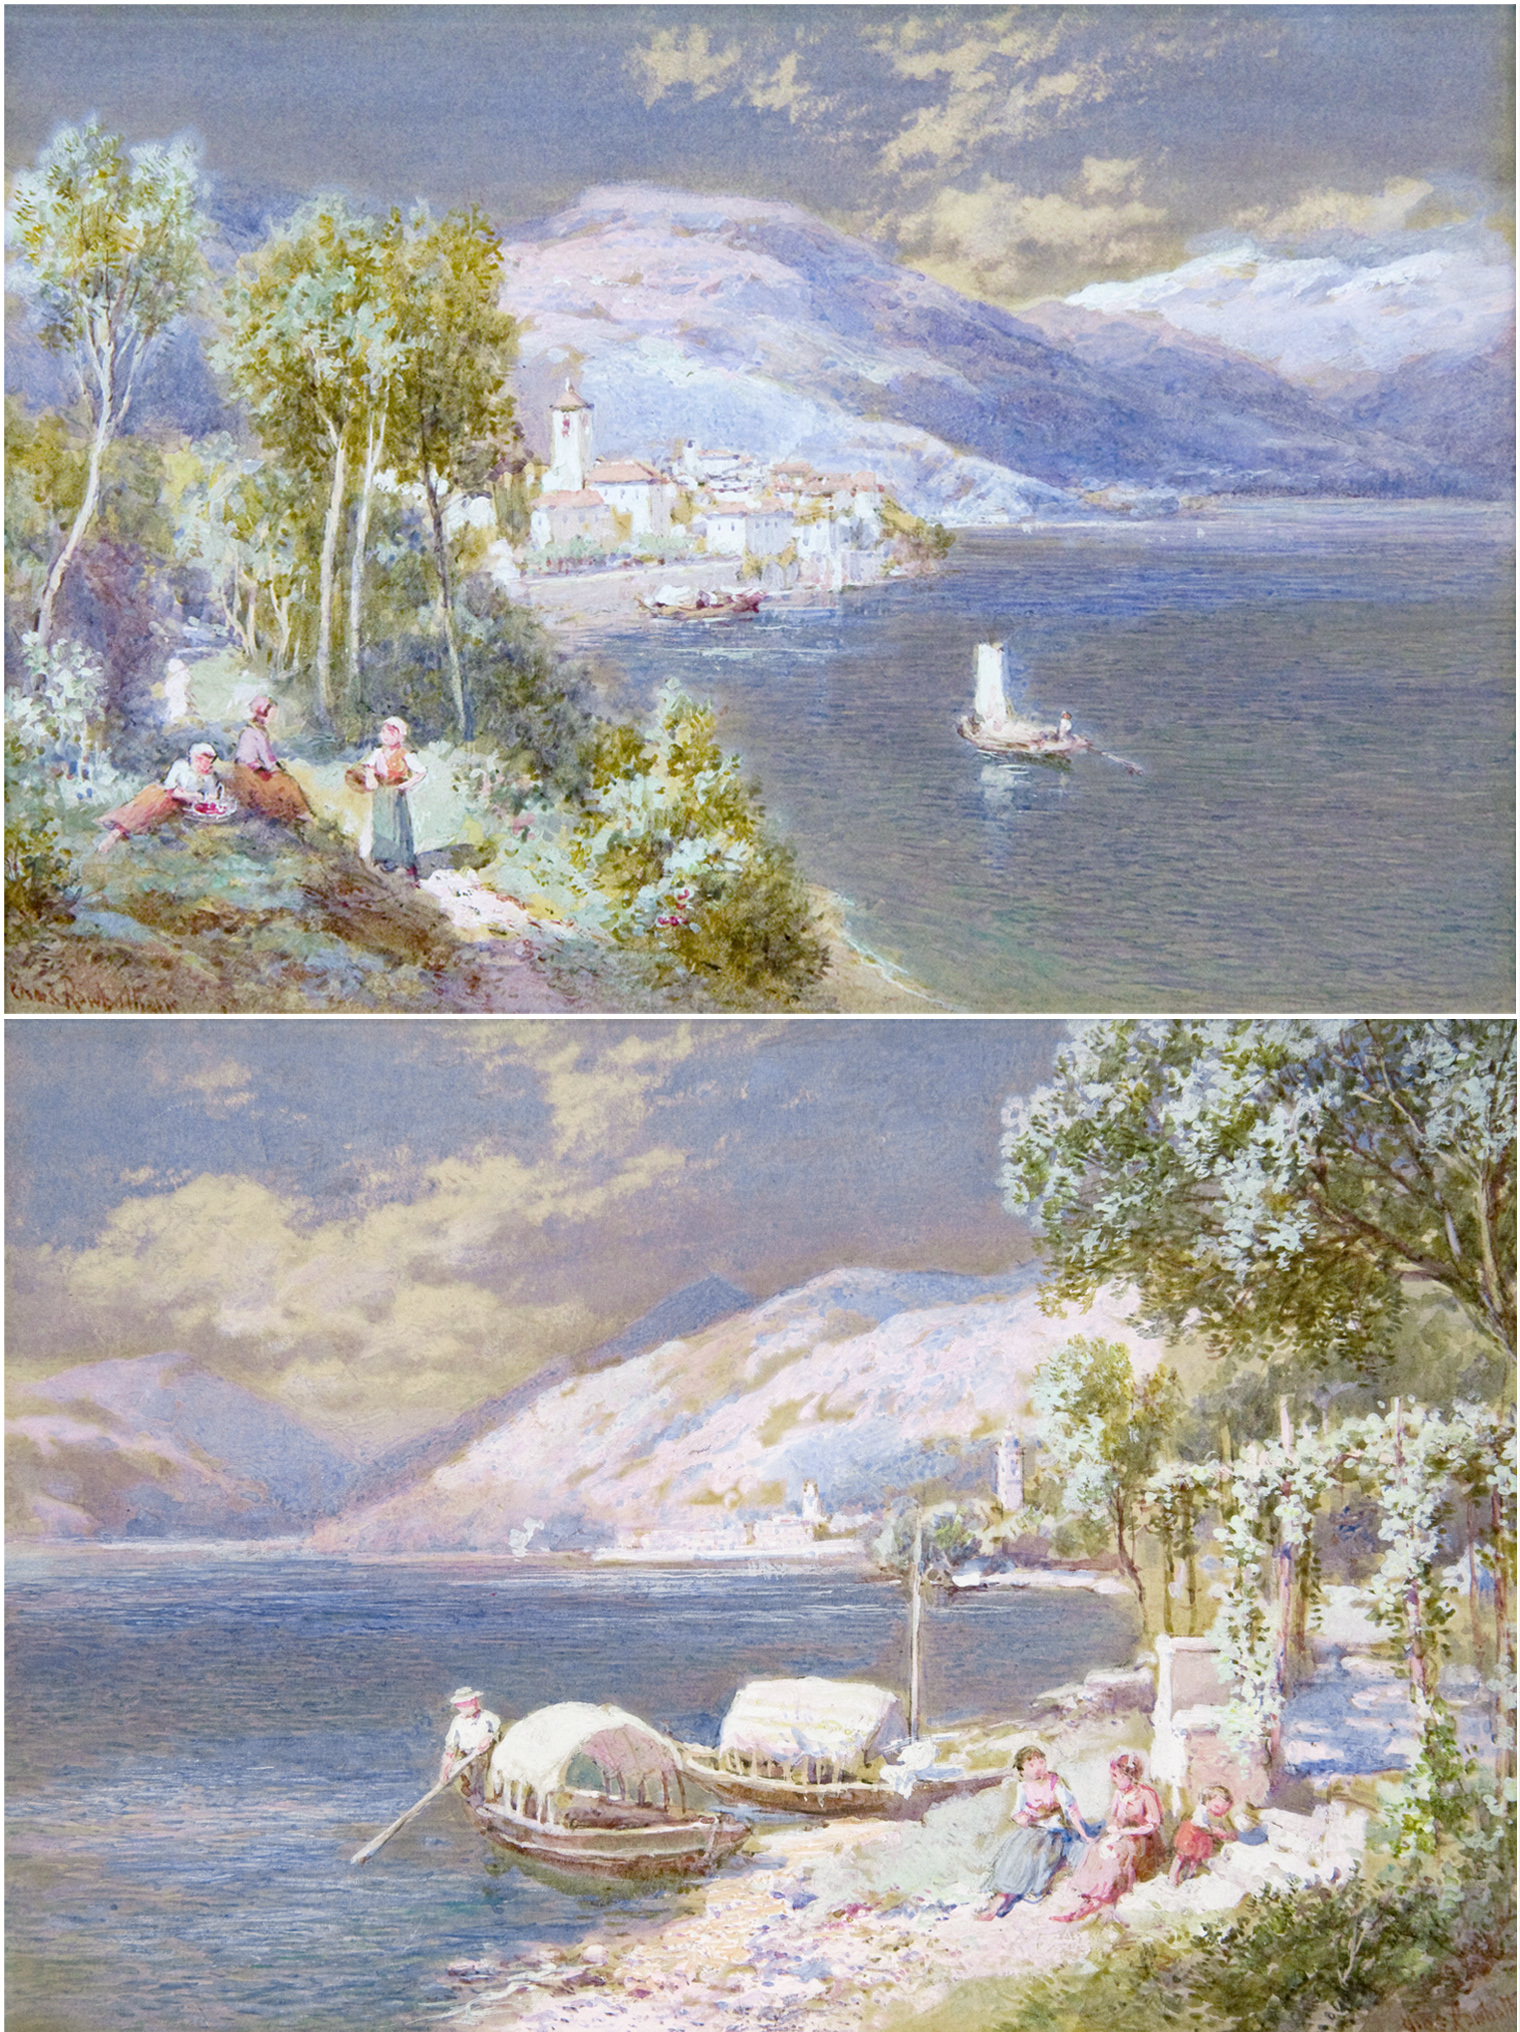 Bellagio on Lake Como and Brissajio on Lake Maggiore (PAIR)